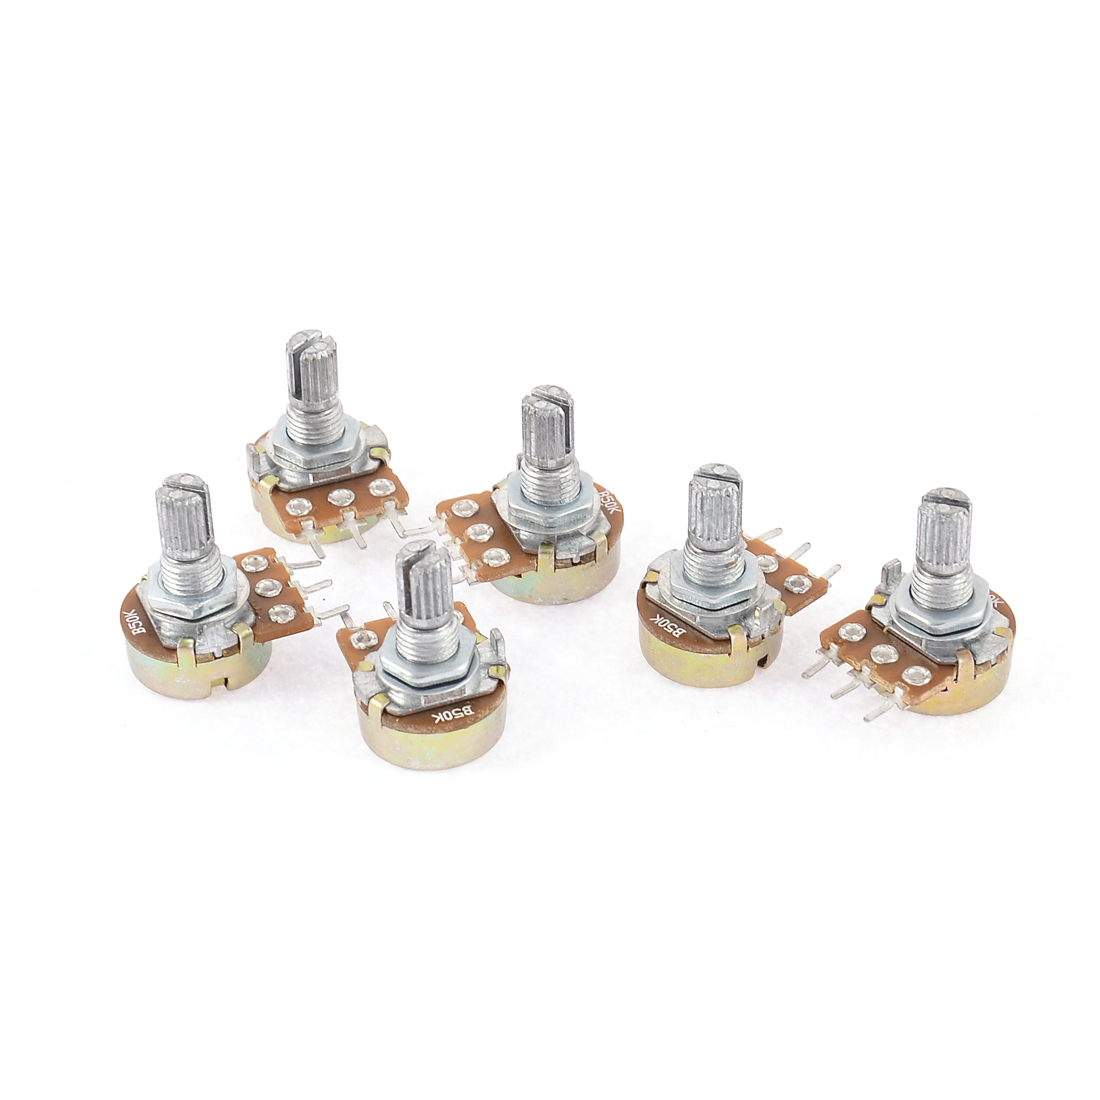 6 Pcs Silver Tone Metal Split Shaft Potentiometer 50K Ohm